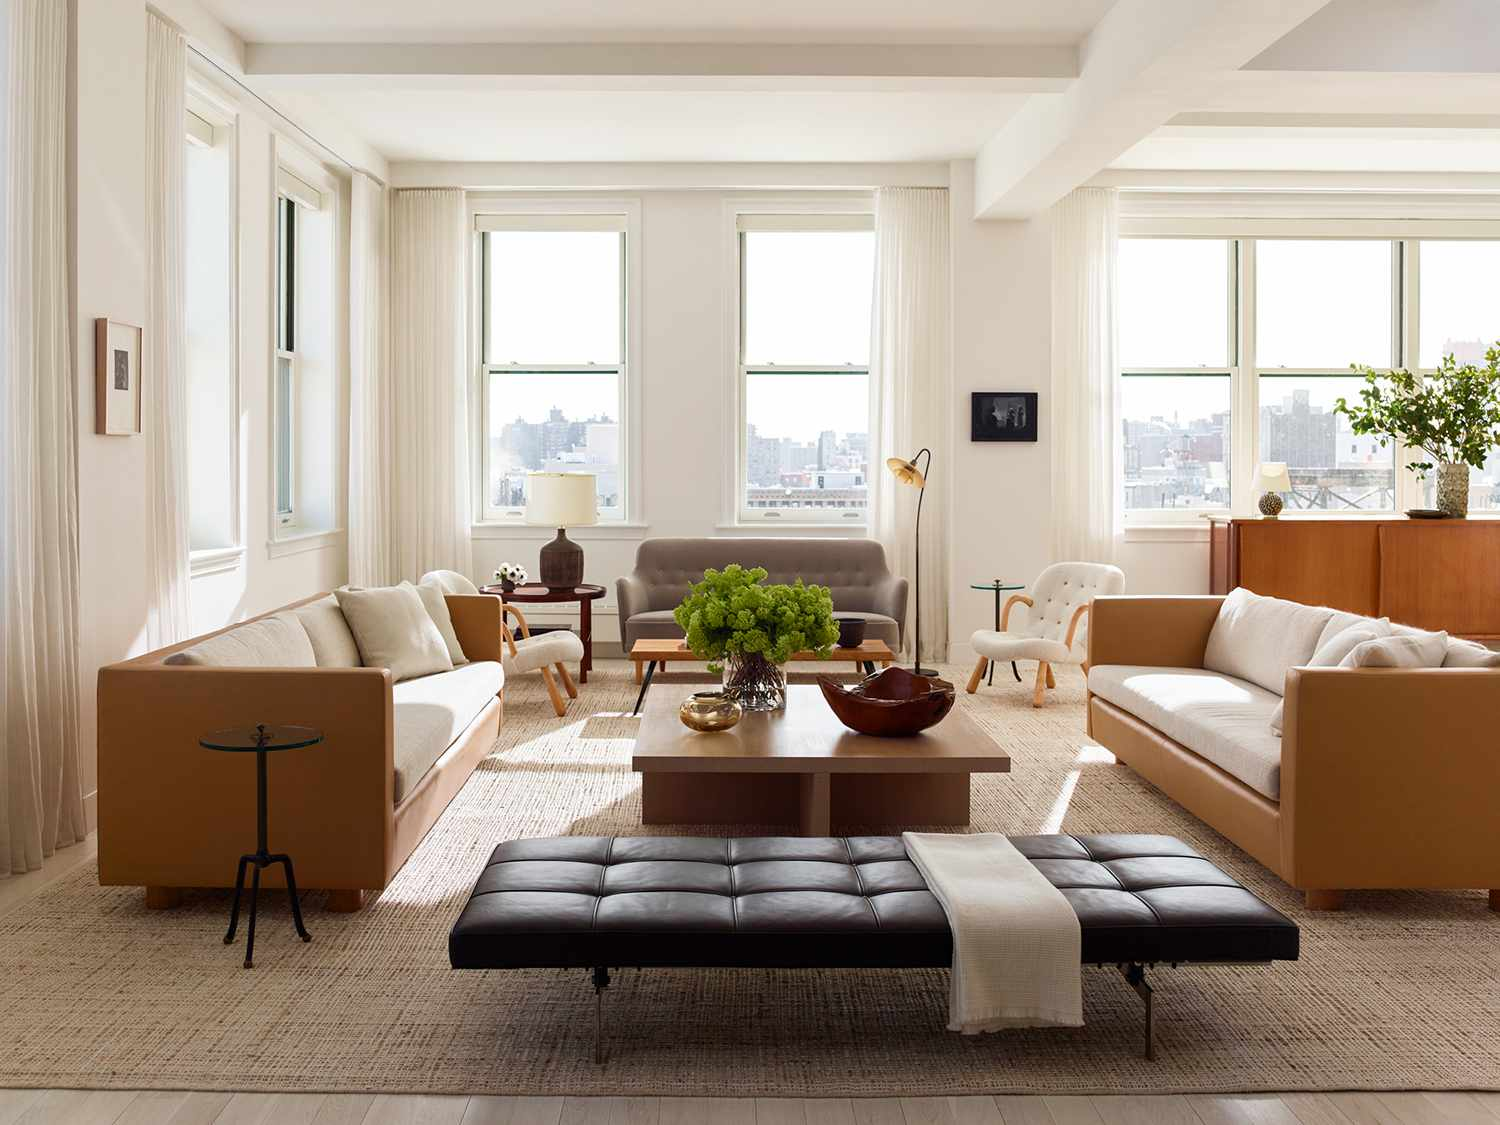 Modern living room with leather furniture